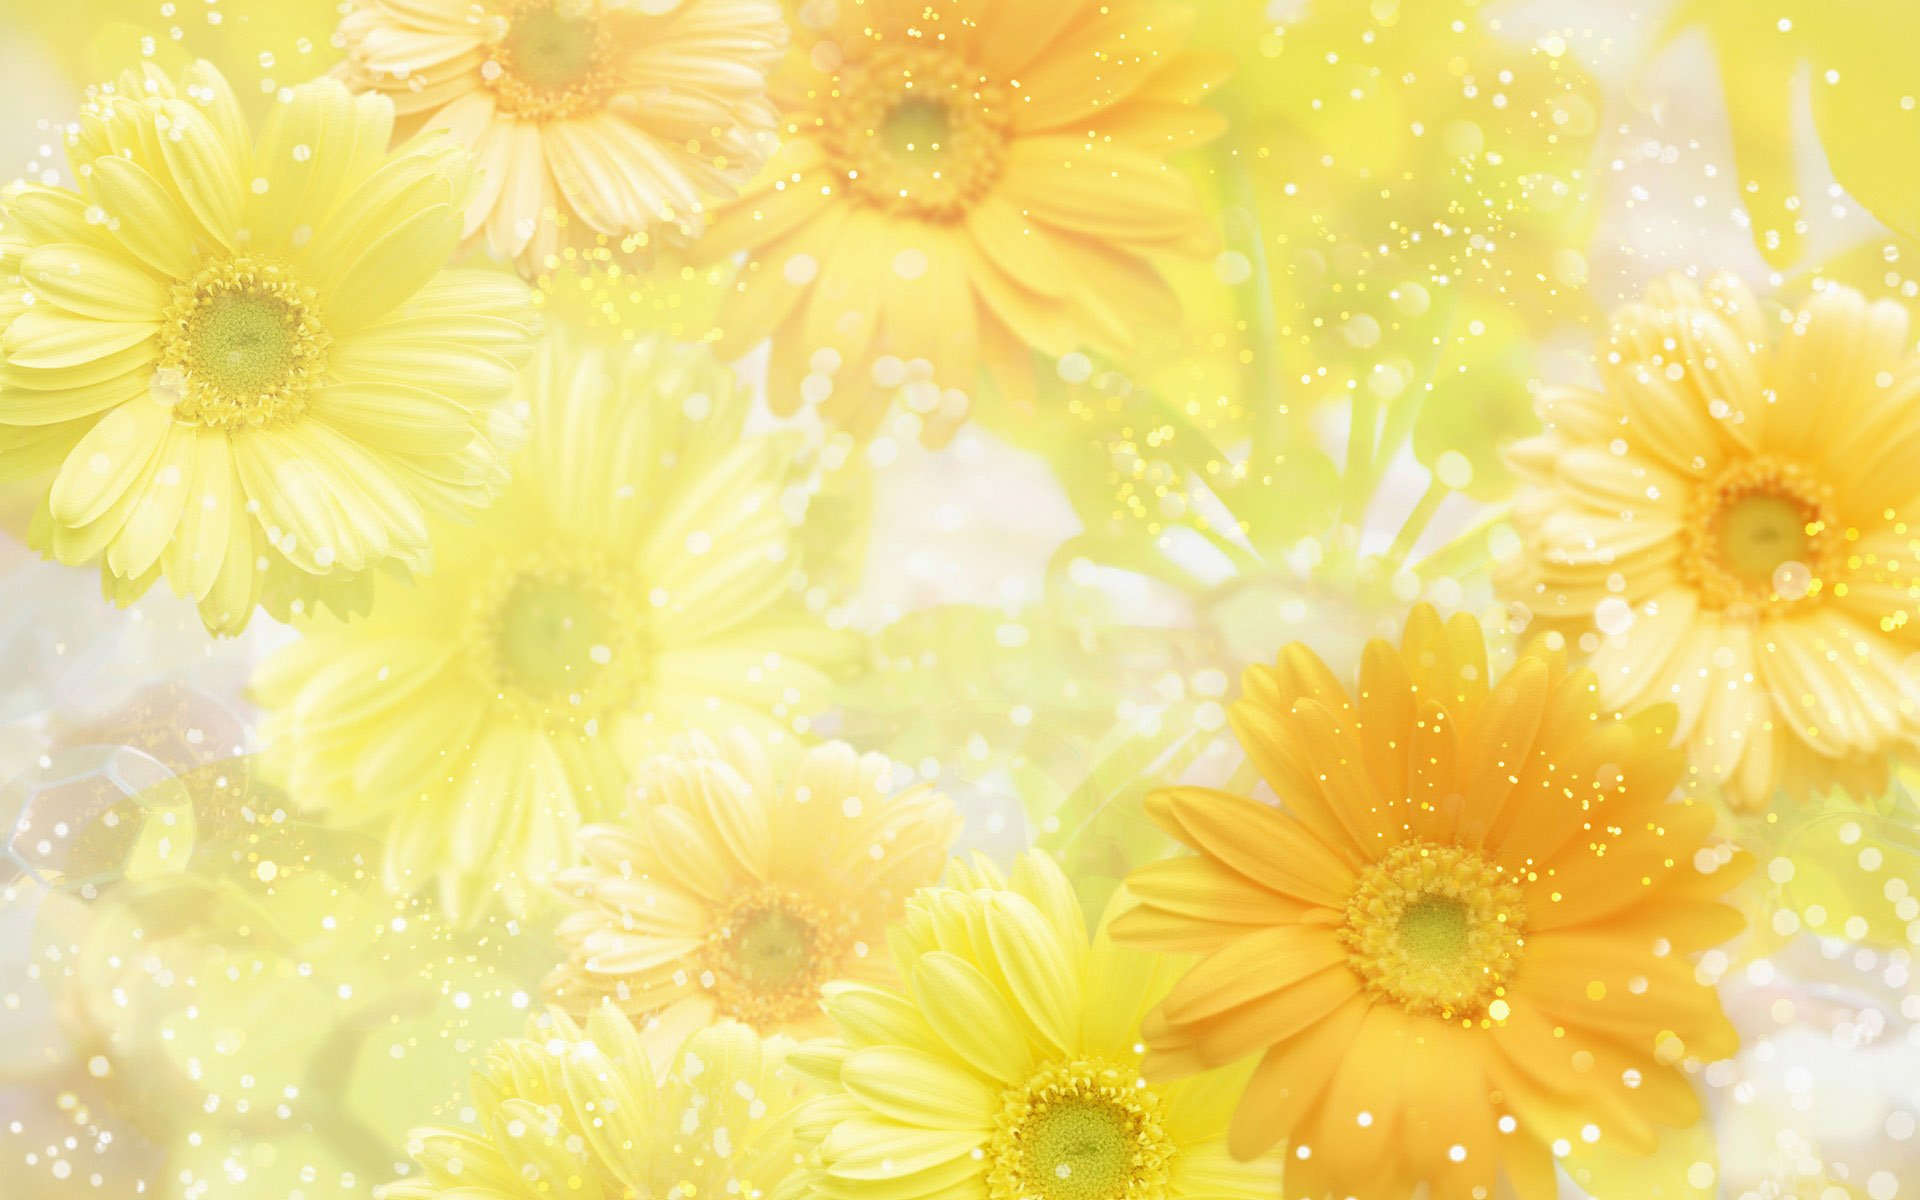 colors images yellow wallpaper hd wallpaper and background photos